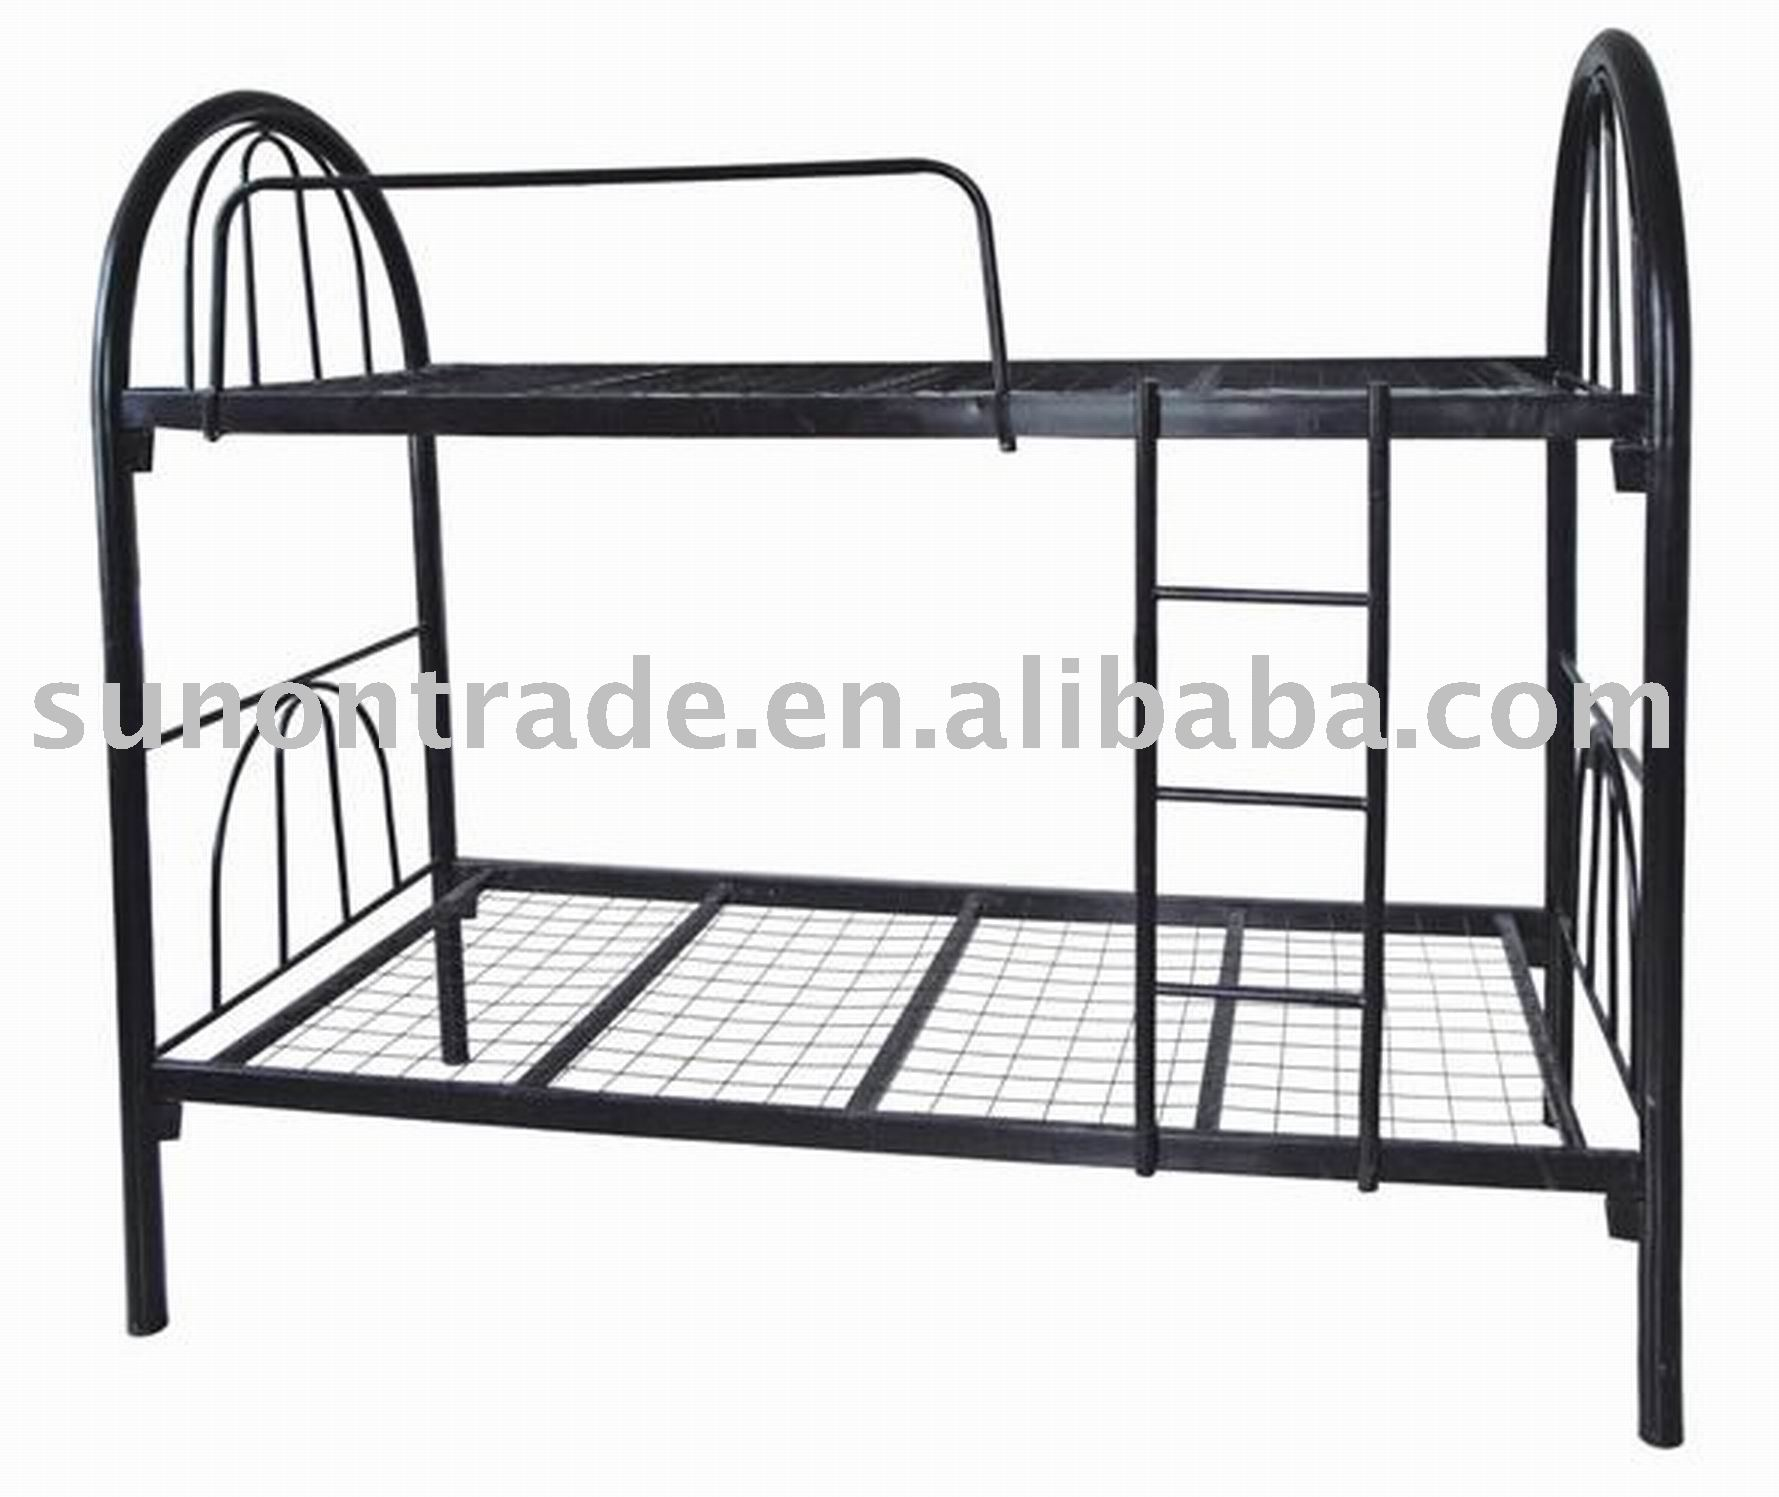 Hot model iron l bunk bed with wire for adult a 03 buy iron bed military bunk bed double bunk beds product on alibaba com